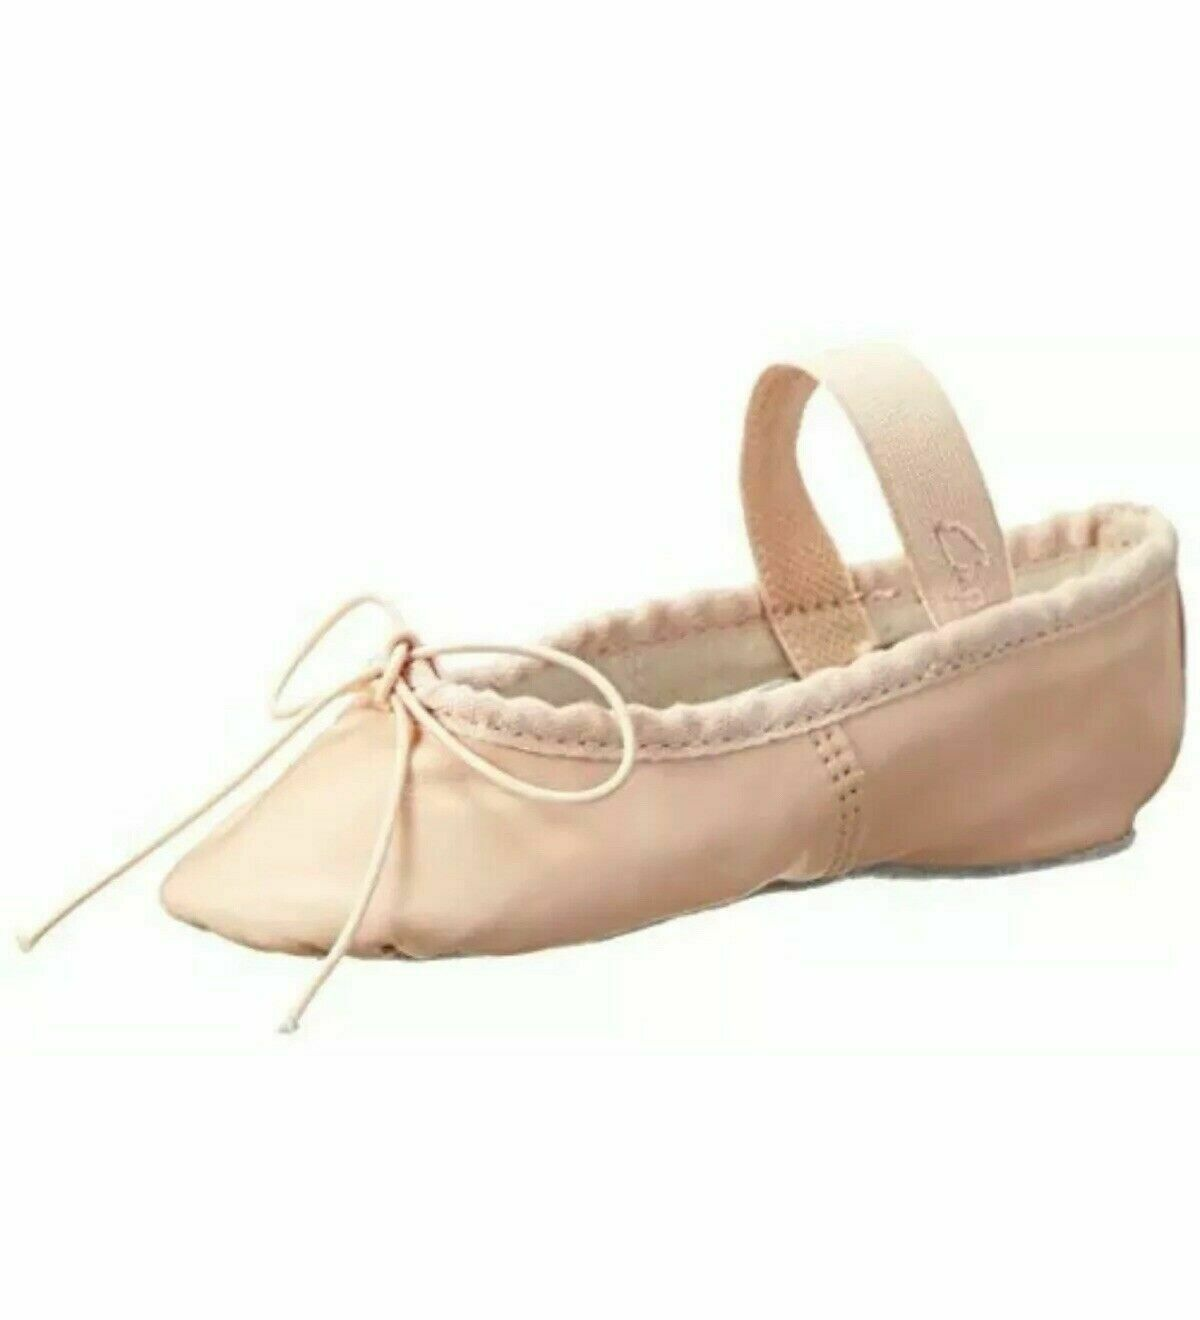 Capezio Youth Teknik 200C NPK Pink Full Sole Ballet Shoe Size 2C 2 C